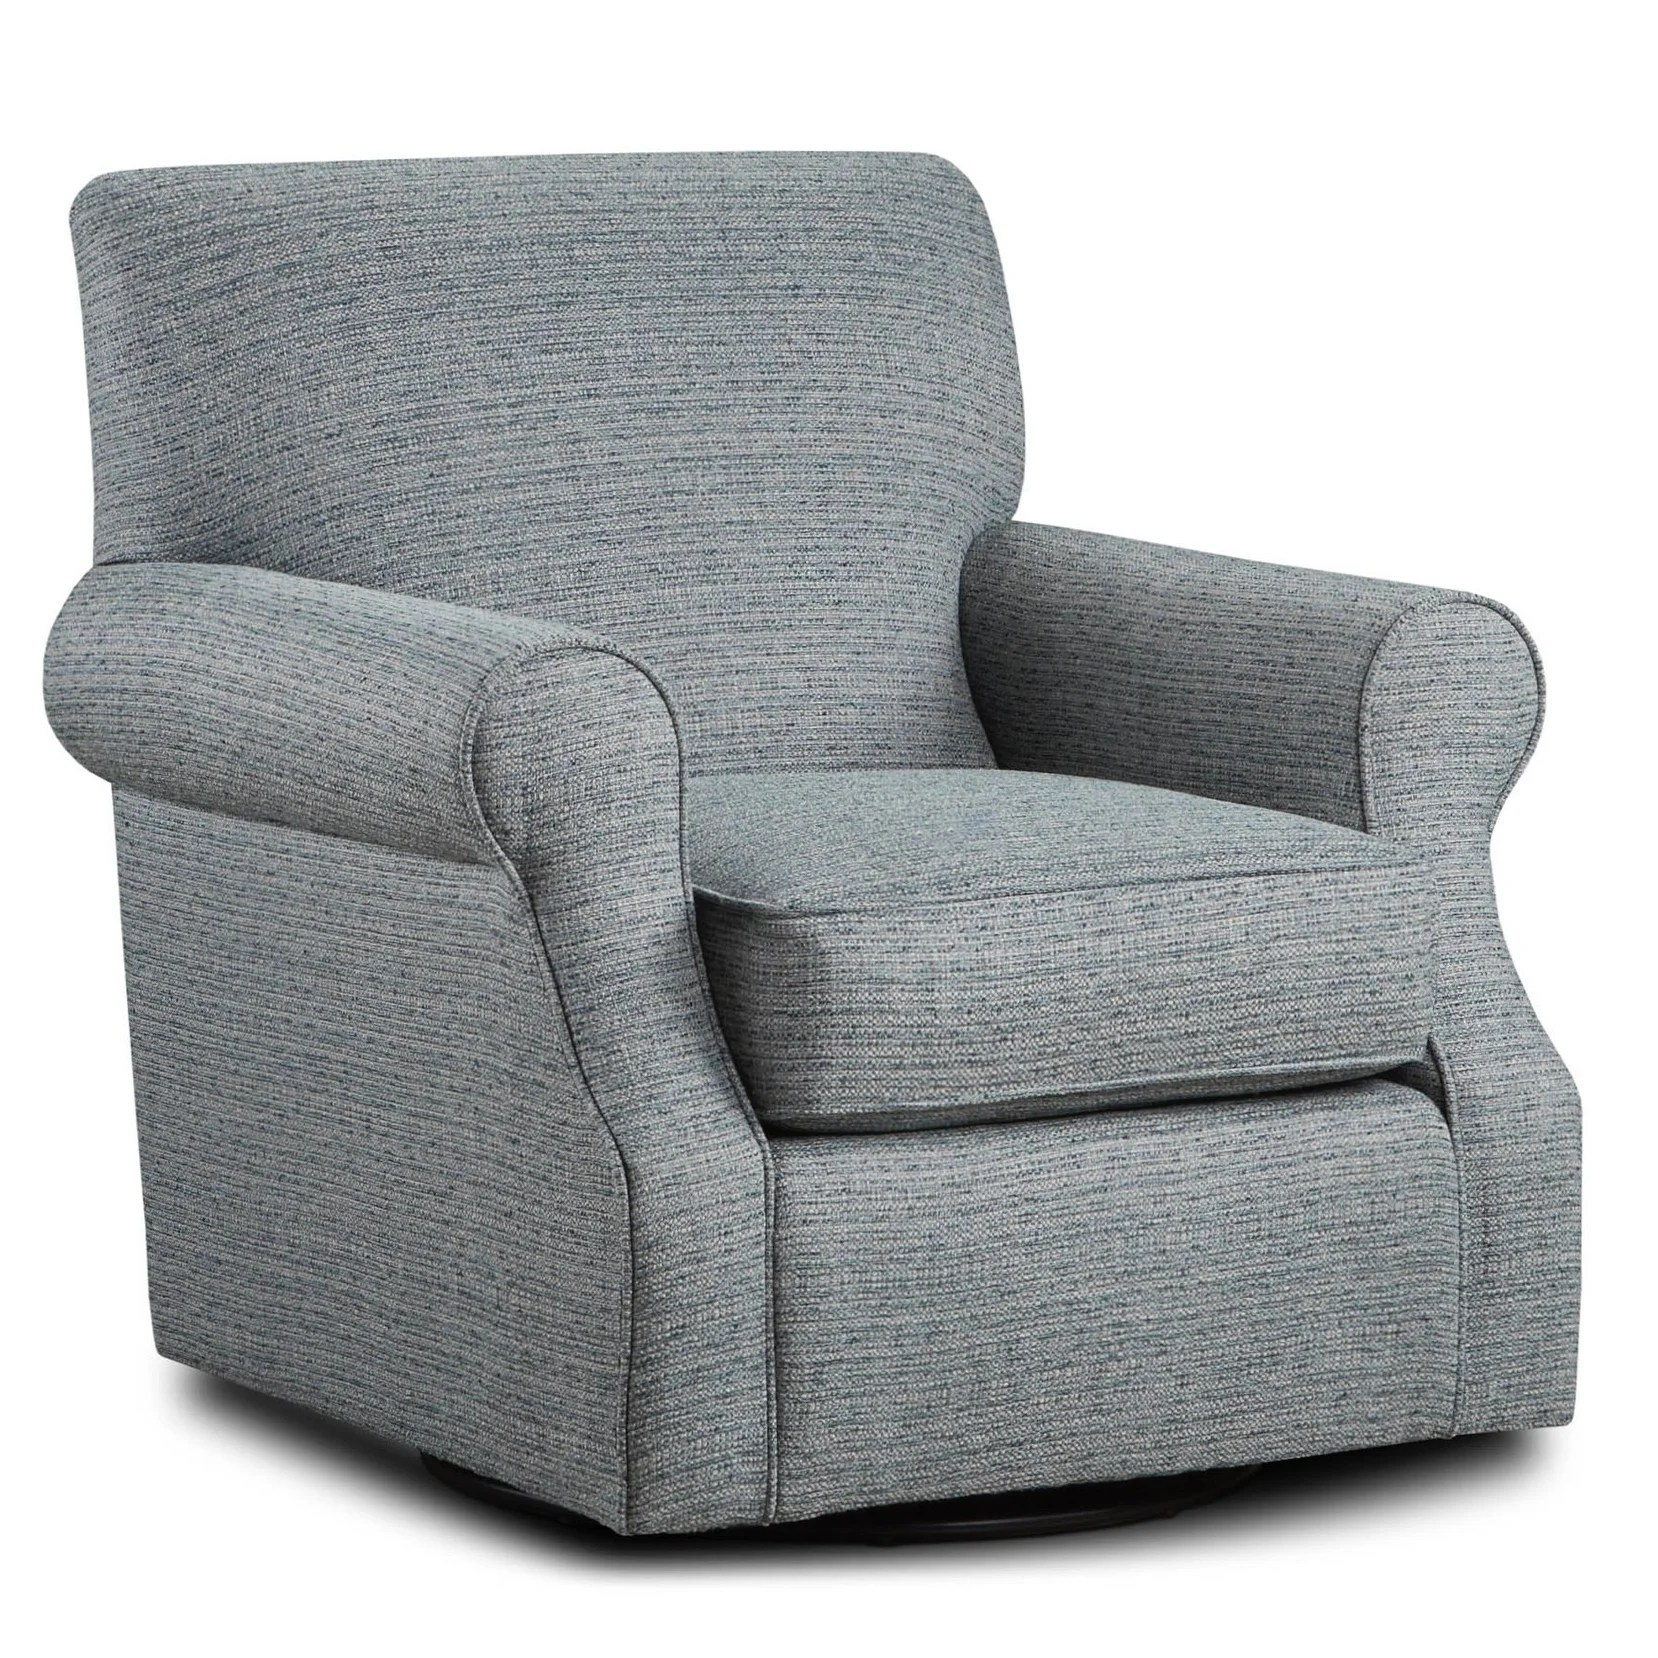 Upholstered Swivel Chairs Branco Teal Fabric Upholstered Swivel Chair